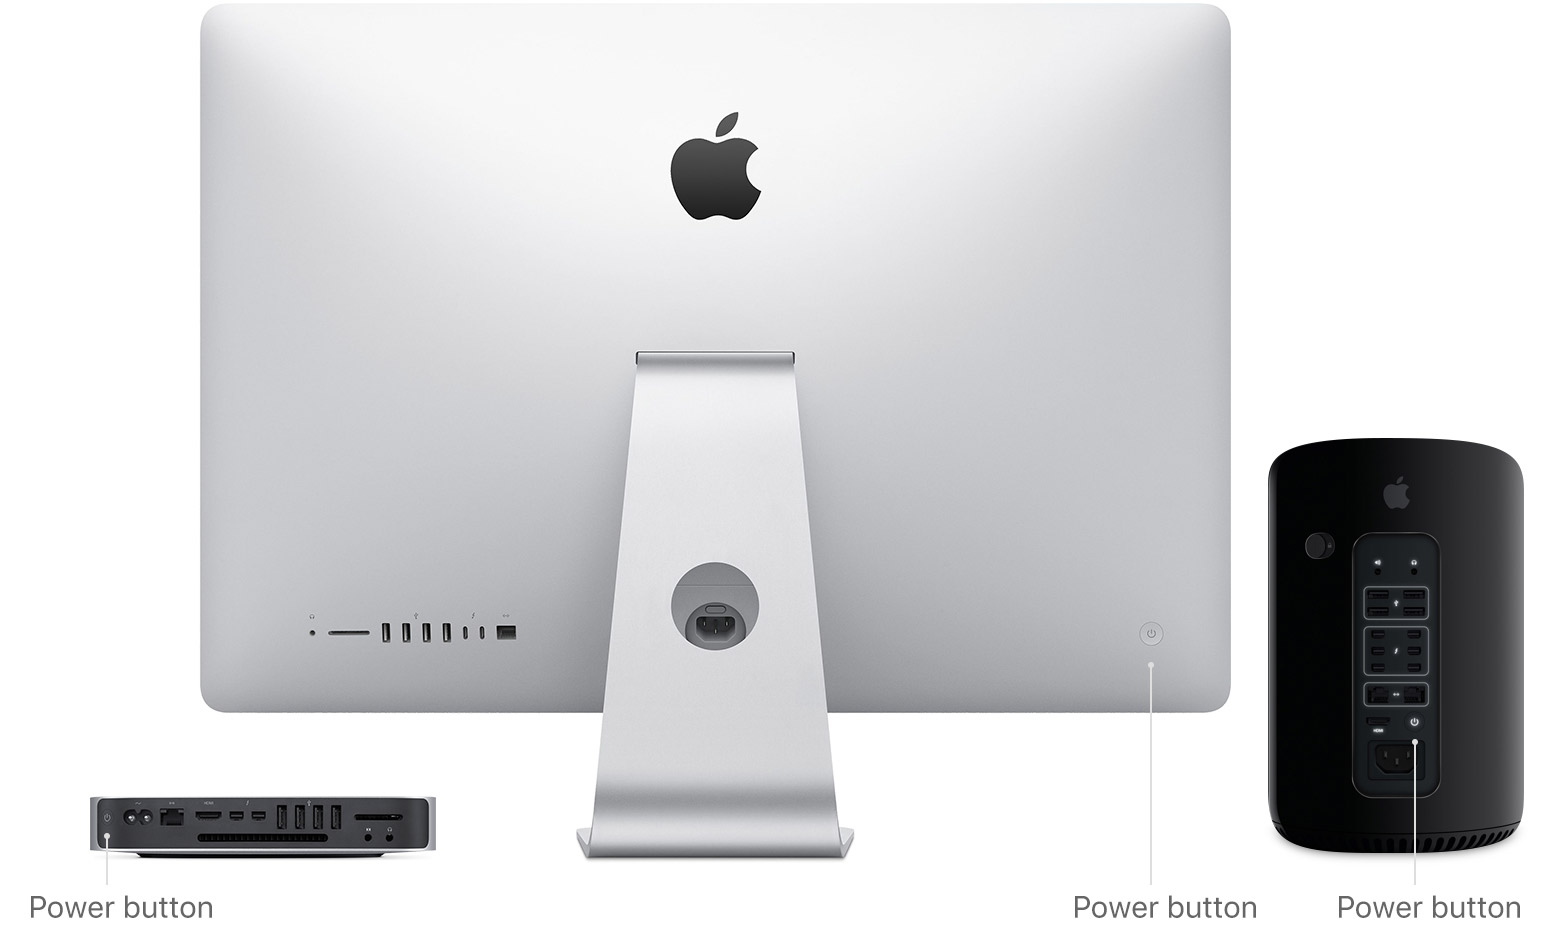 Mac mini, iMac, and Mac Pro with power button callouts